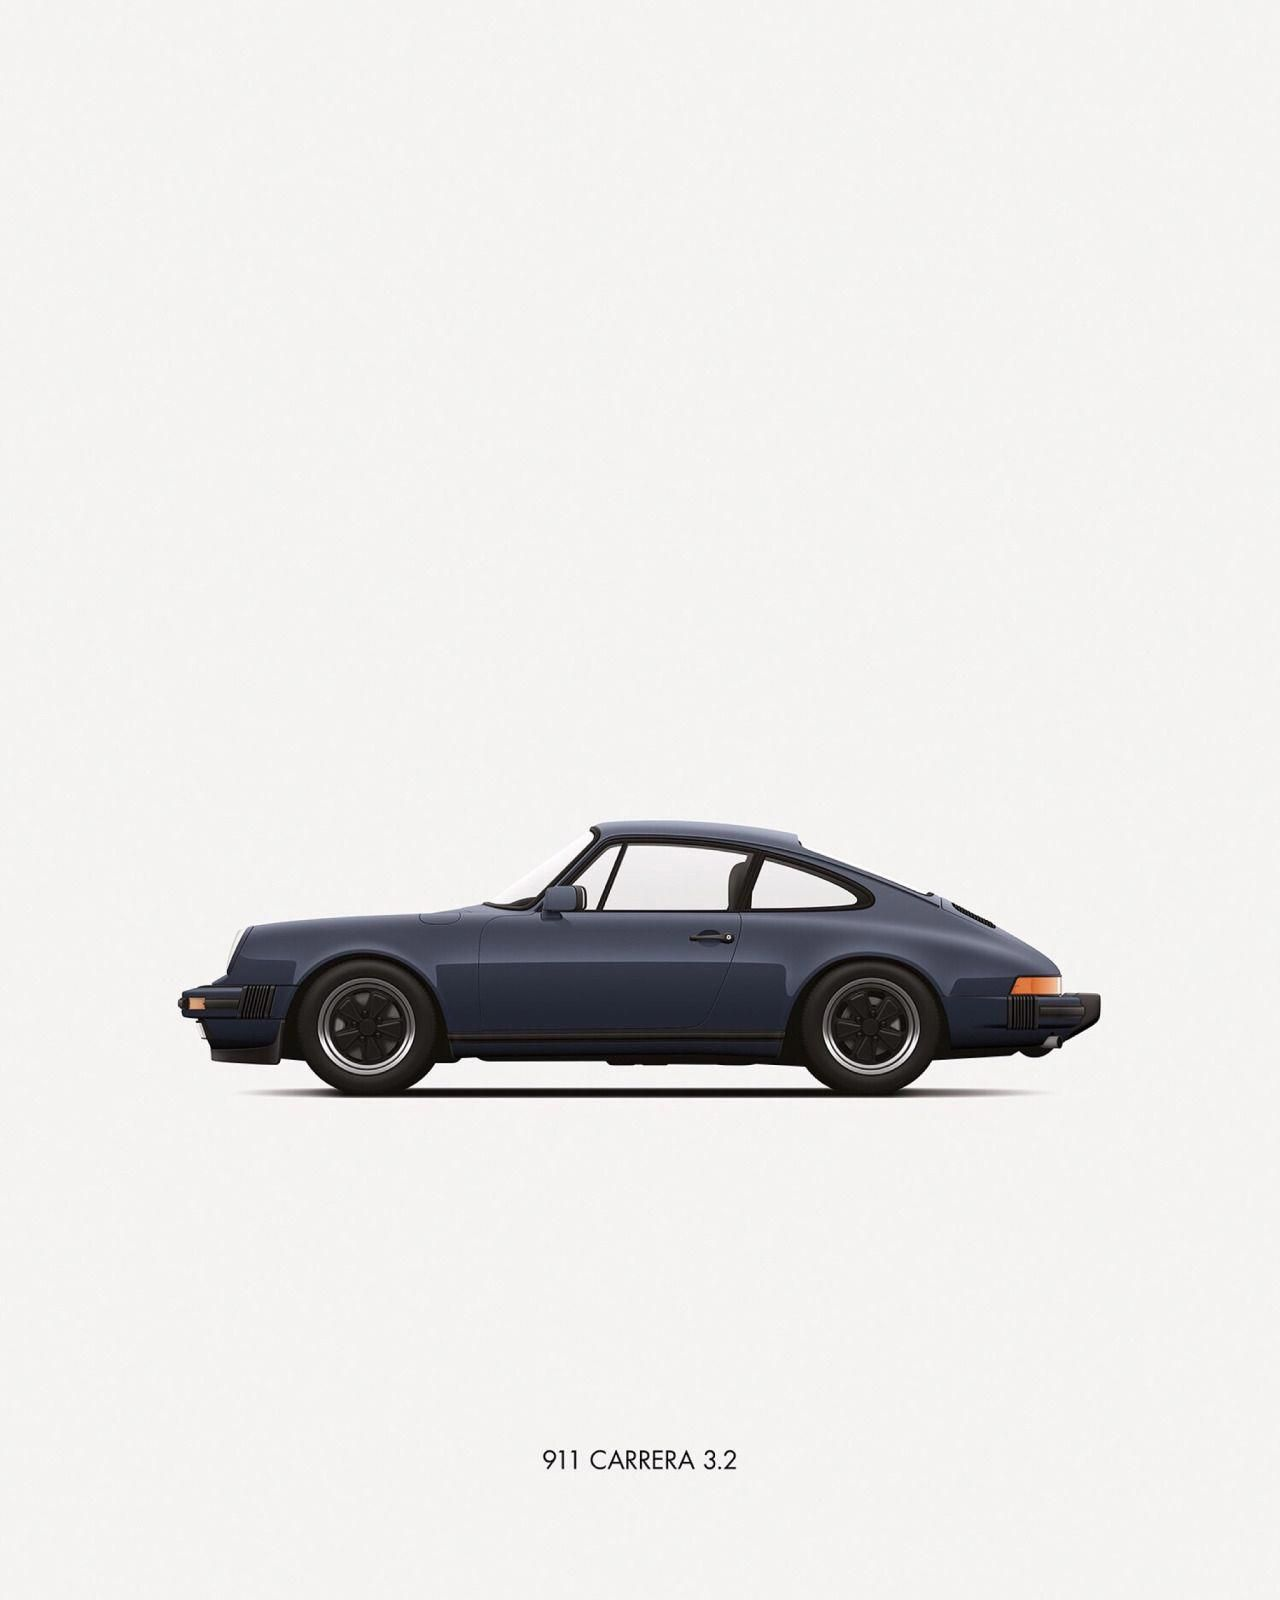 Petrolified Simple Yet So Beautiful This Carrera